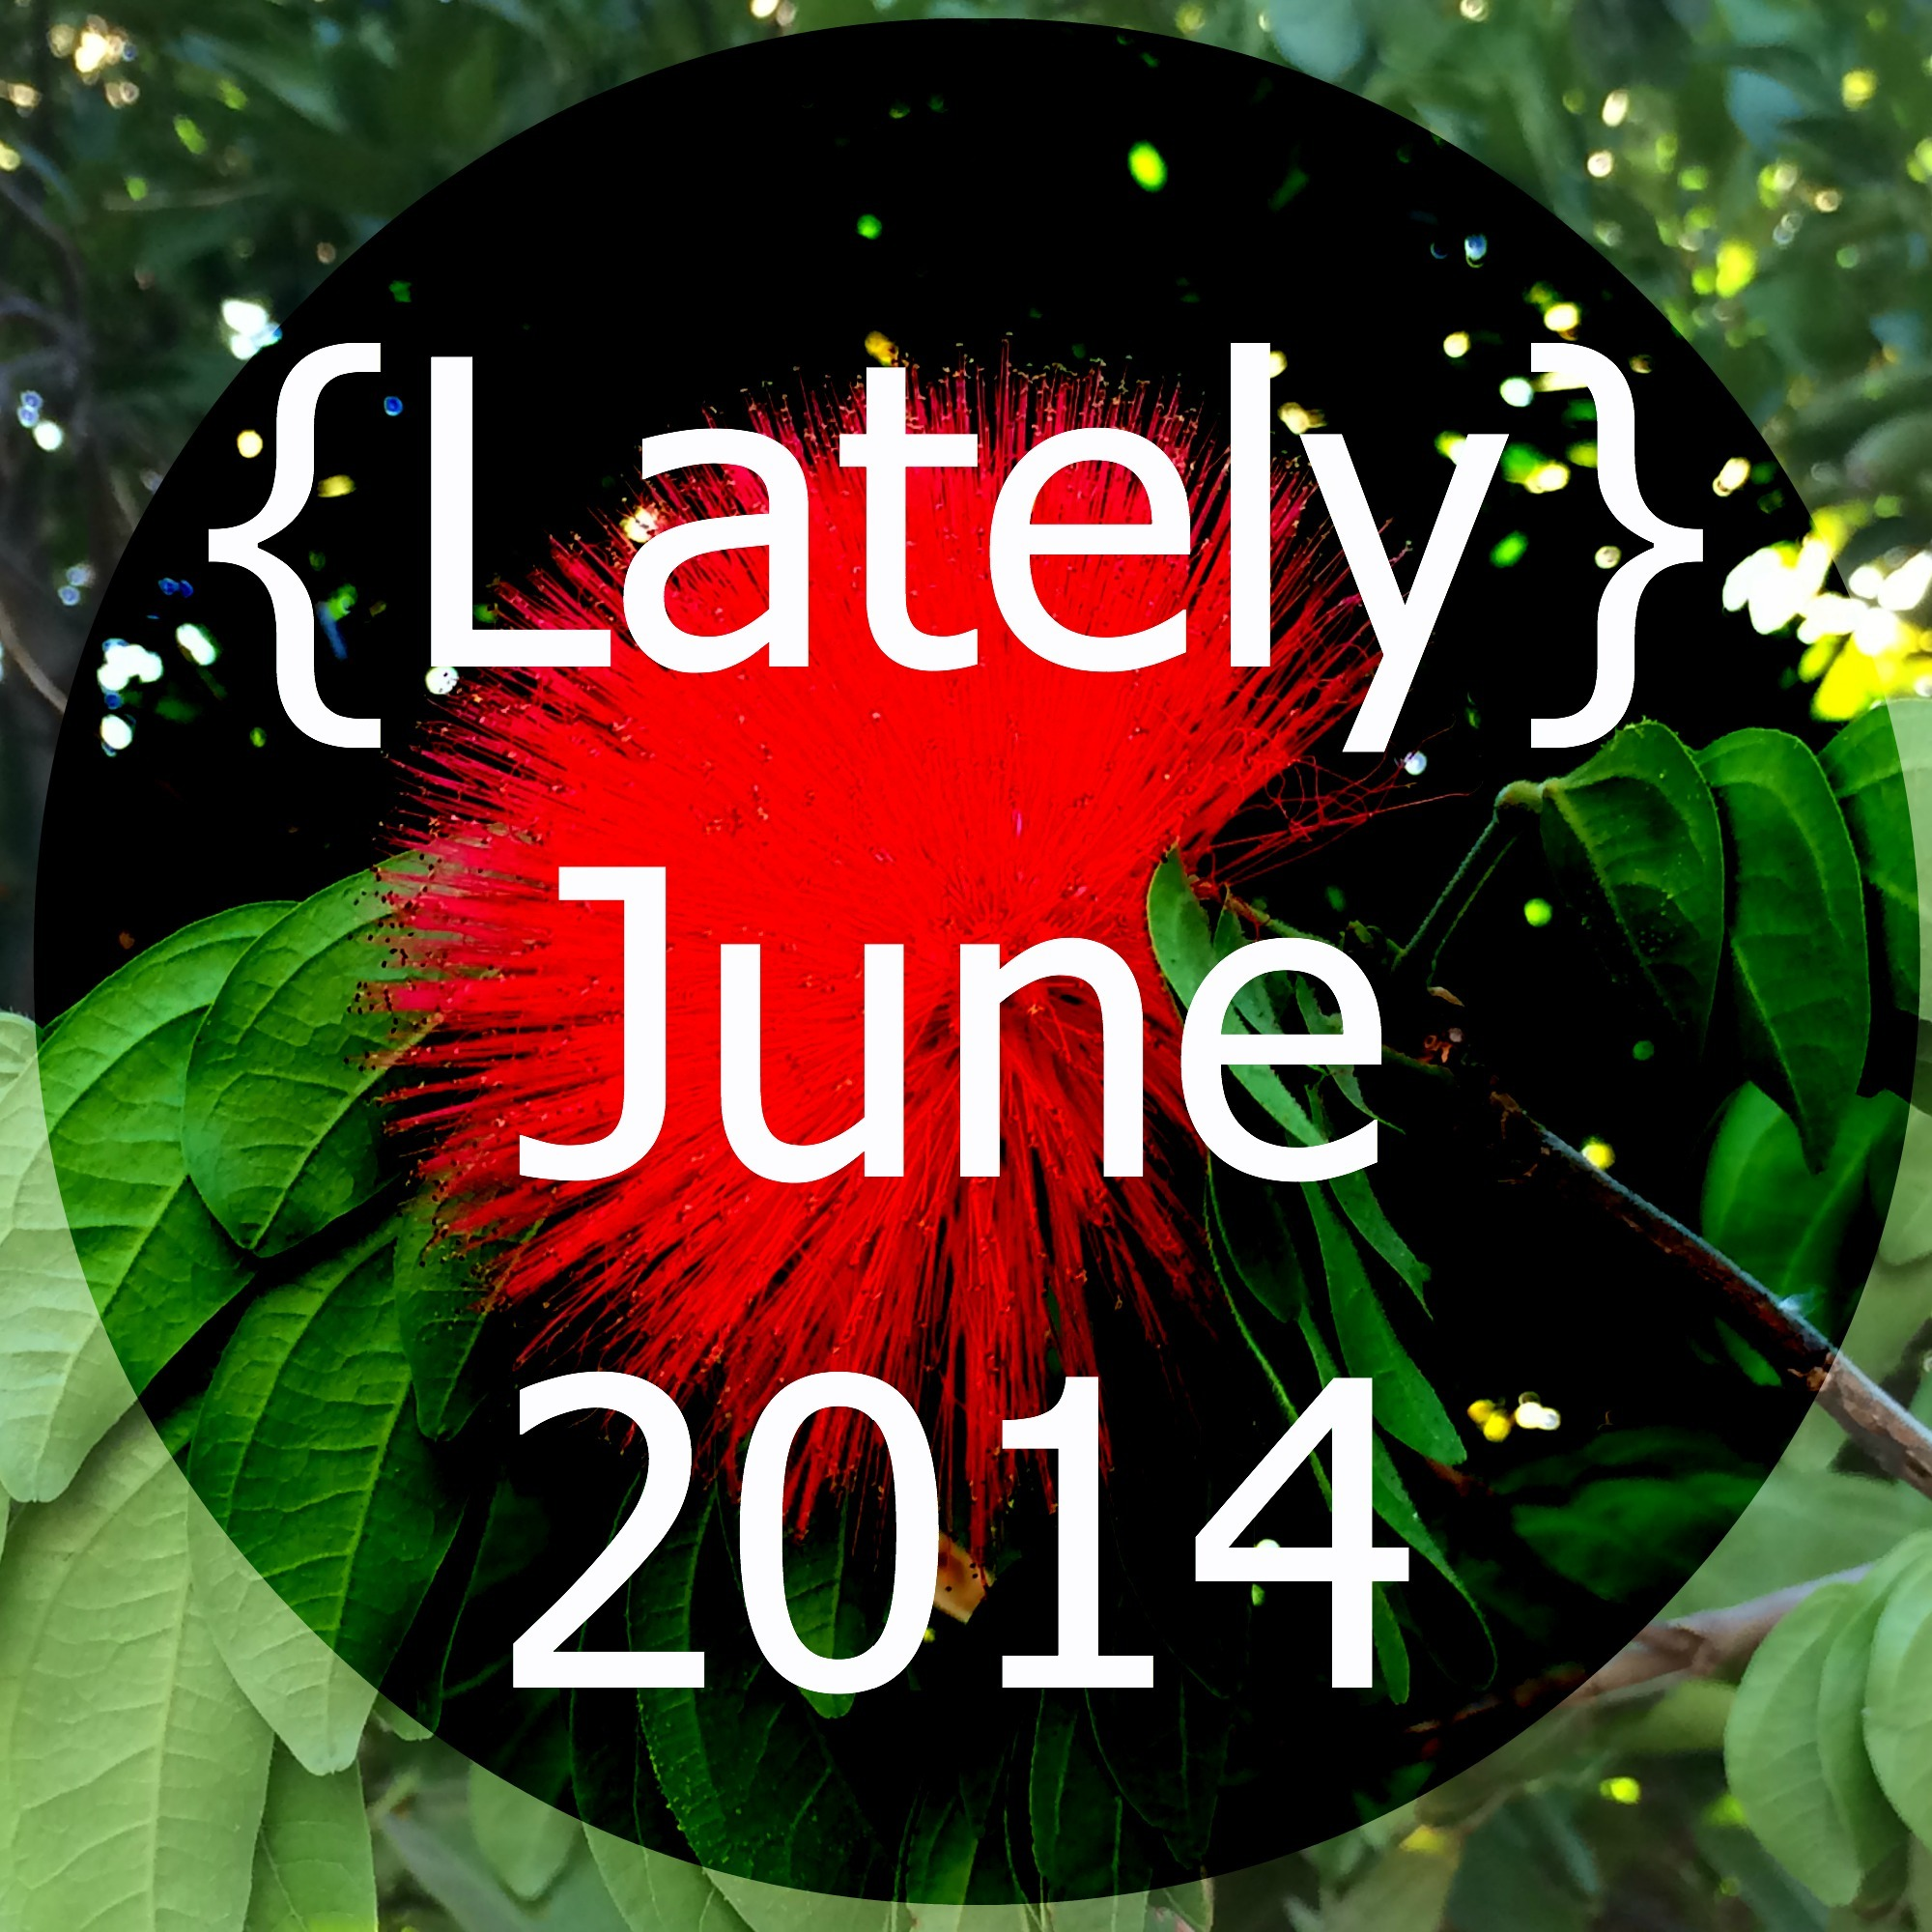 Lately // June 2014 Edition